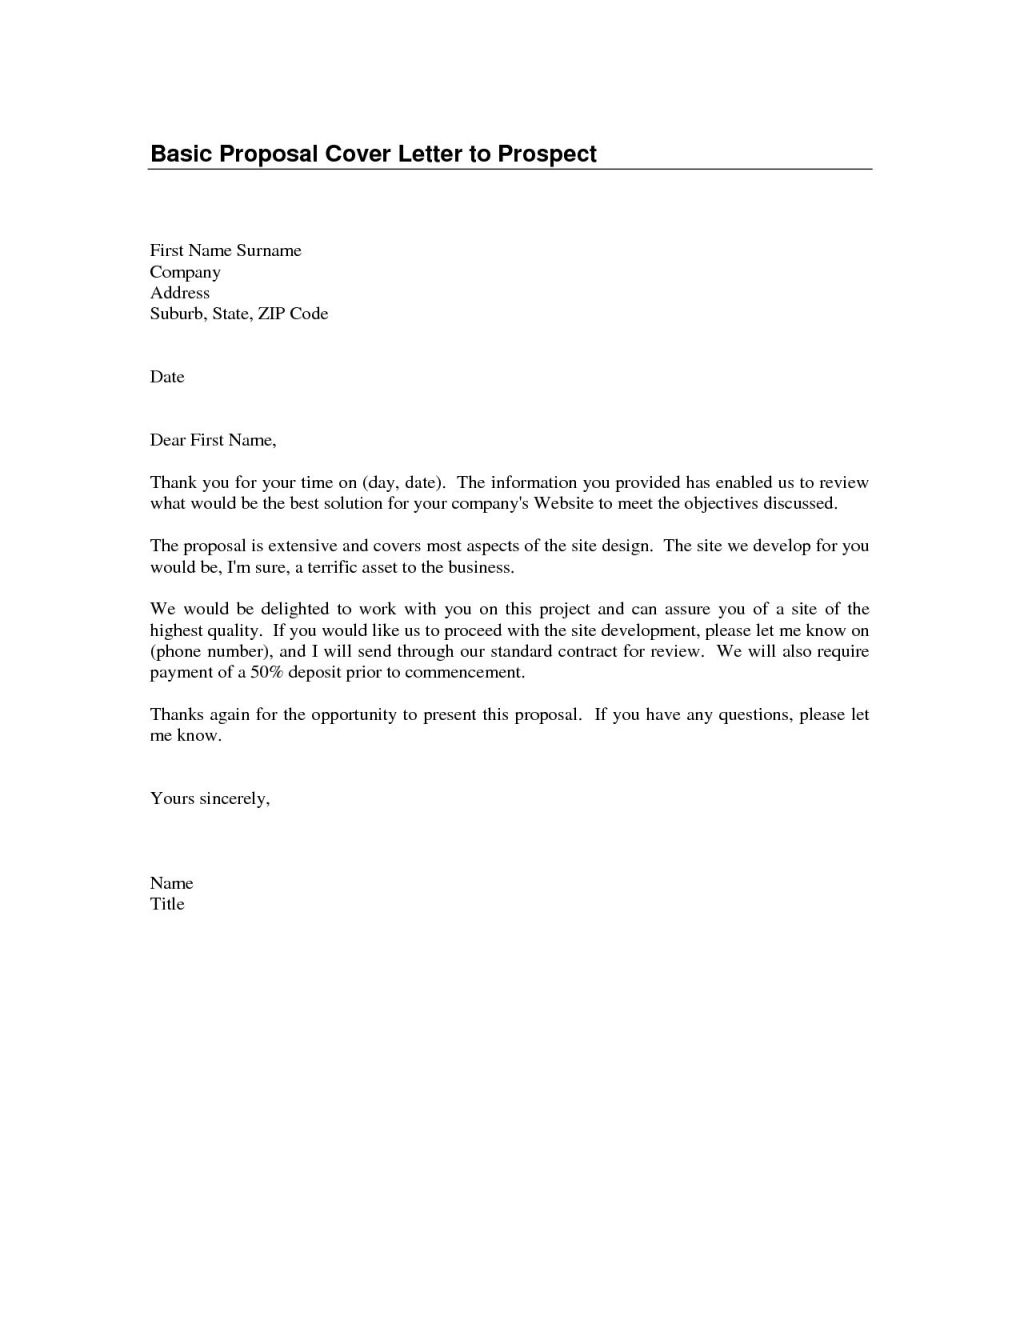 car sales prospecting letter template Collection-Well Liked Lovely Real Estate Prospecting Letters Samples Your Template Prospecting Letter Templates eb1 20-c